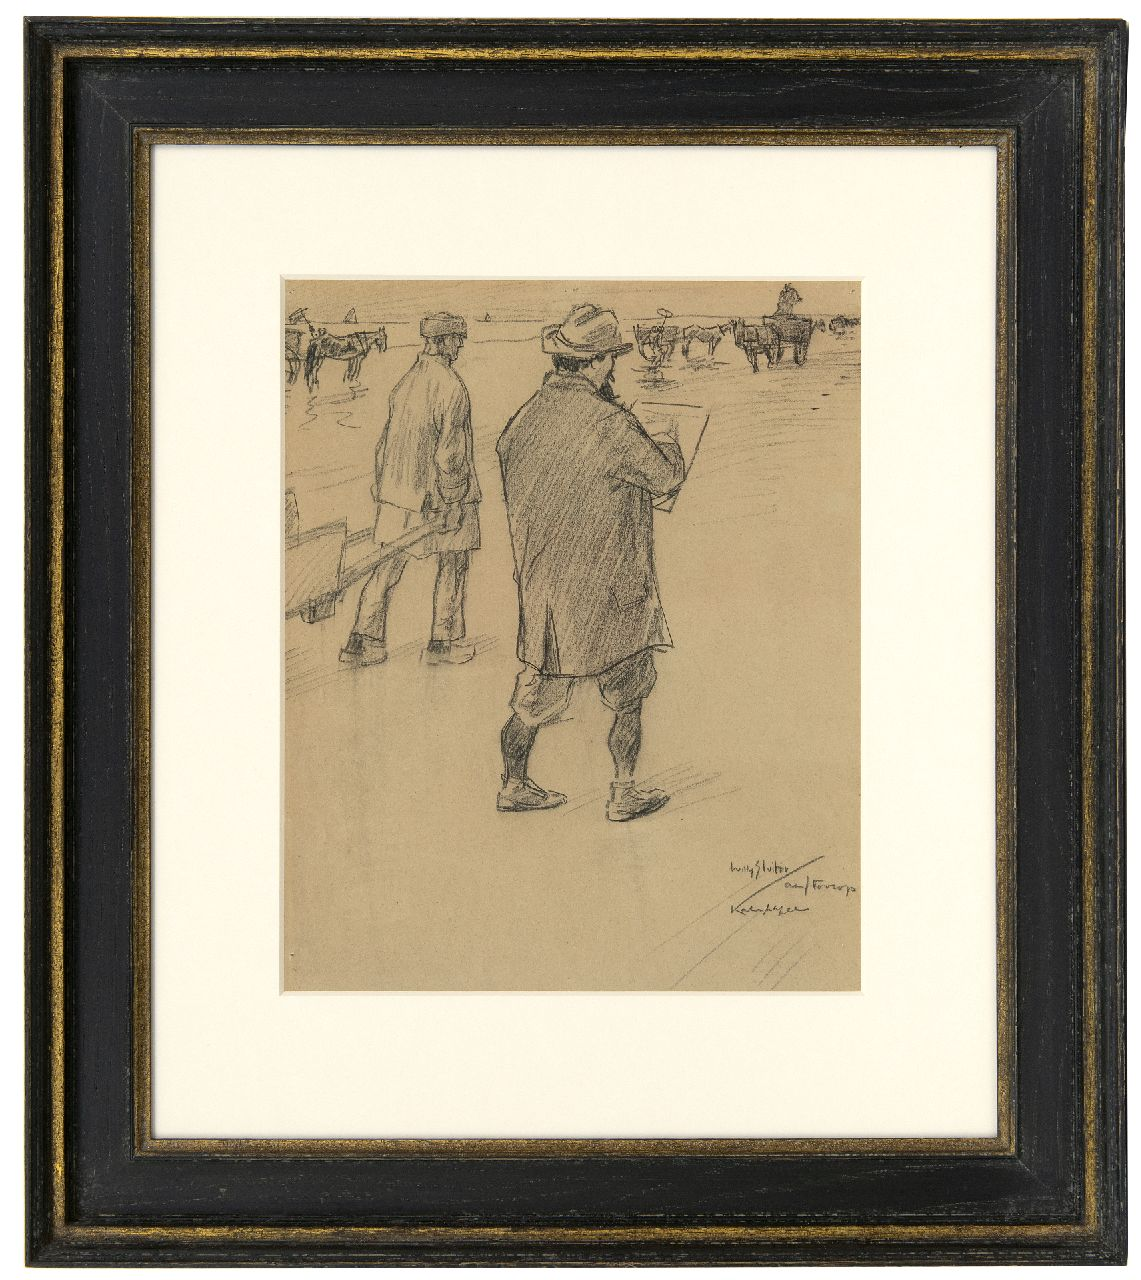 Sluiter J.W.  | Jan Willem 'Willy' Sluiter | Watercolours and drawings offered for sale | Jan Toorop sketching on the beach of Katwijk aan Zee, black chalk on paper 32.6 x 27.0 cm, signed l.r. and executed ca. 1898